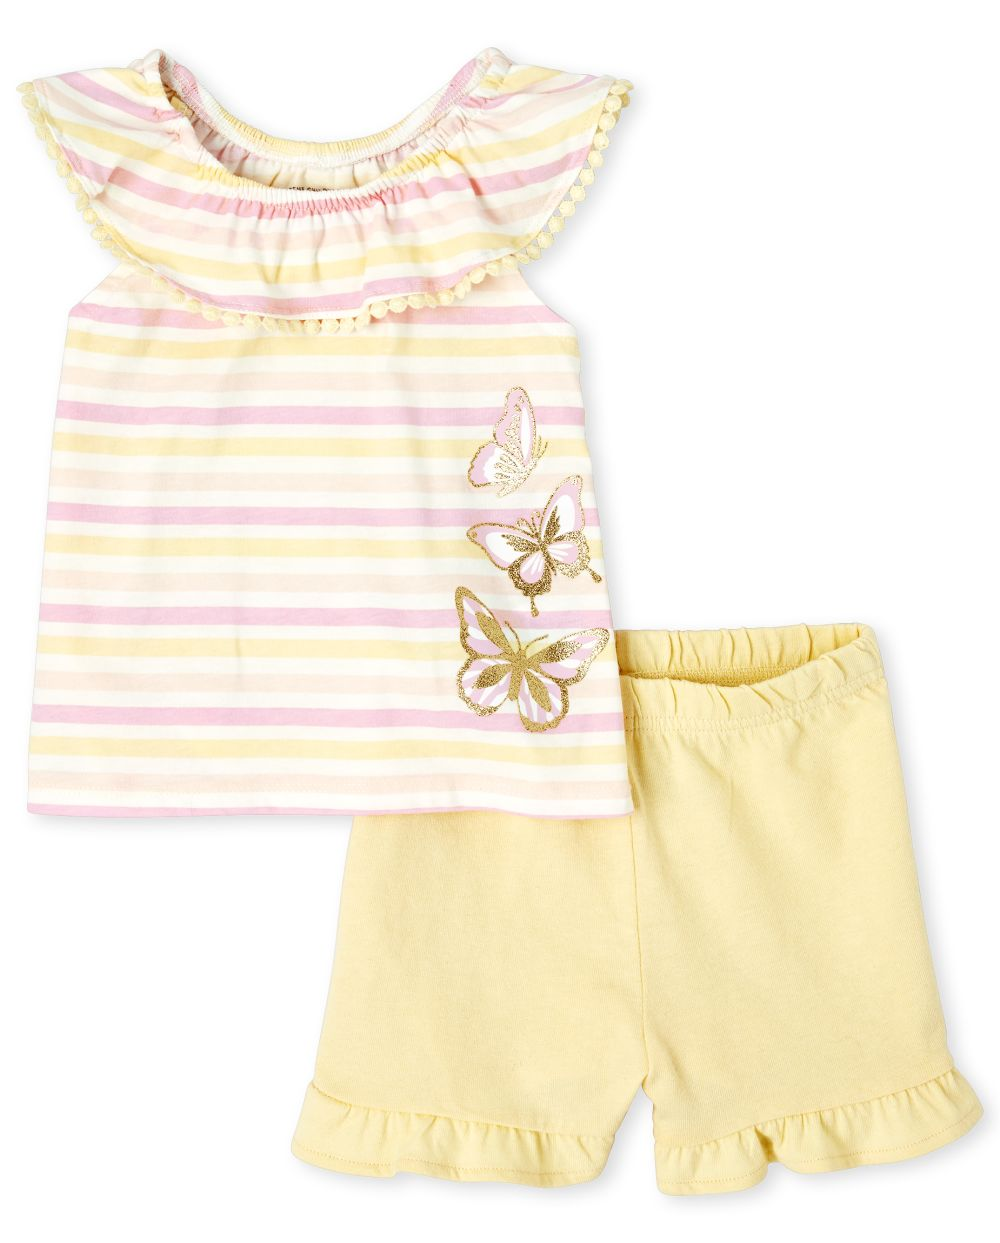 Toddler Striped Ruffle 2-Piece Set - Pink